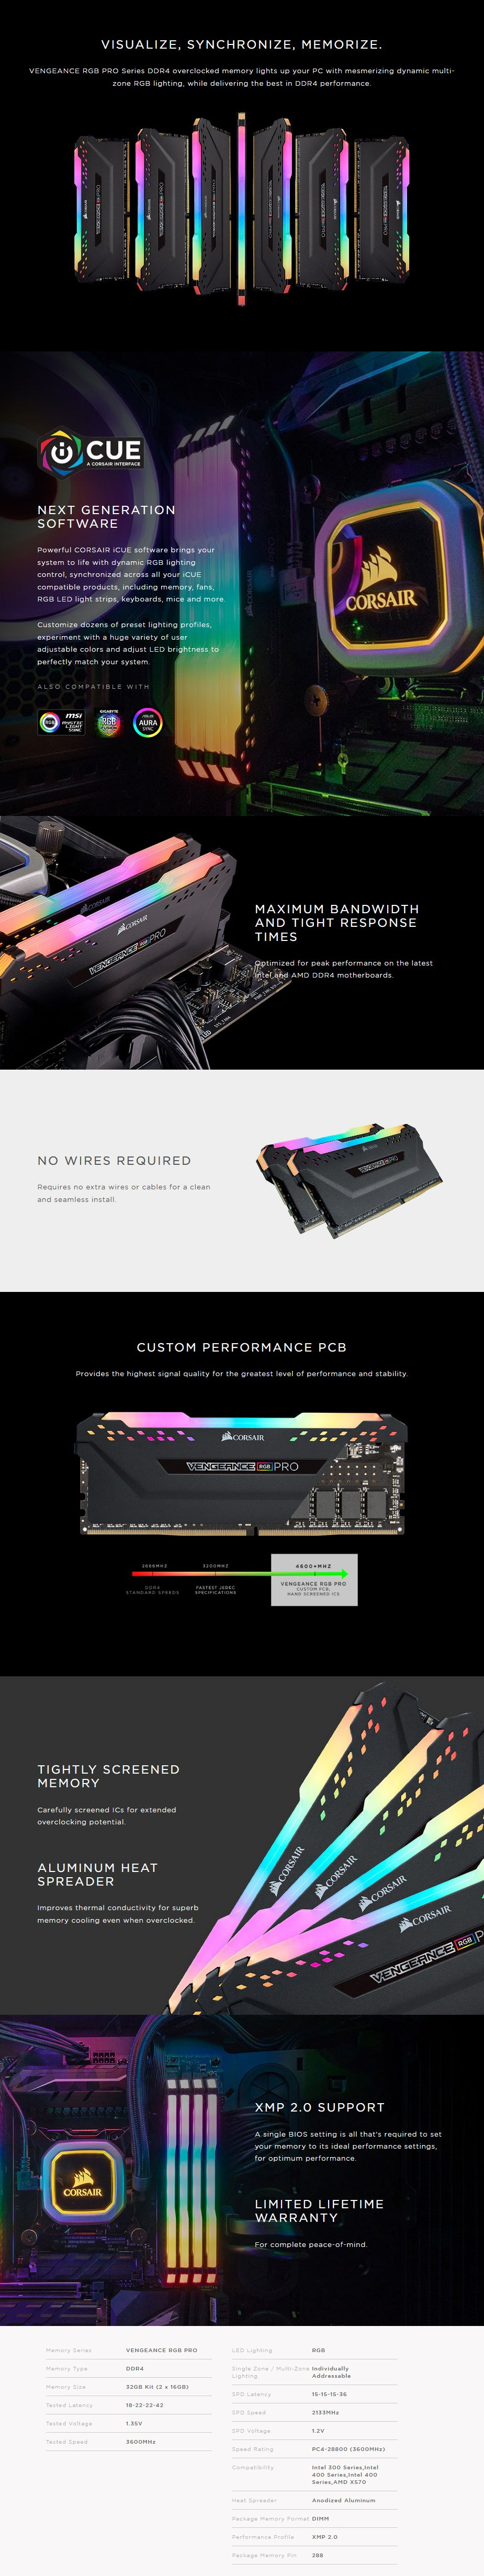 Corsair Vengeance RGB PRO 32GB (2x 16GB) DDR4 3600MHz CL18 Memory - Black - Overview 1